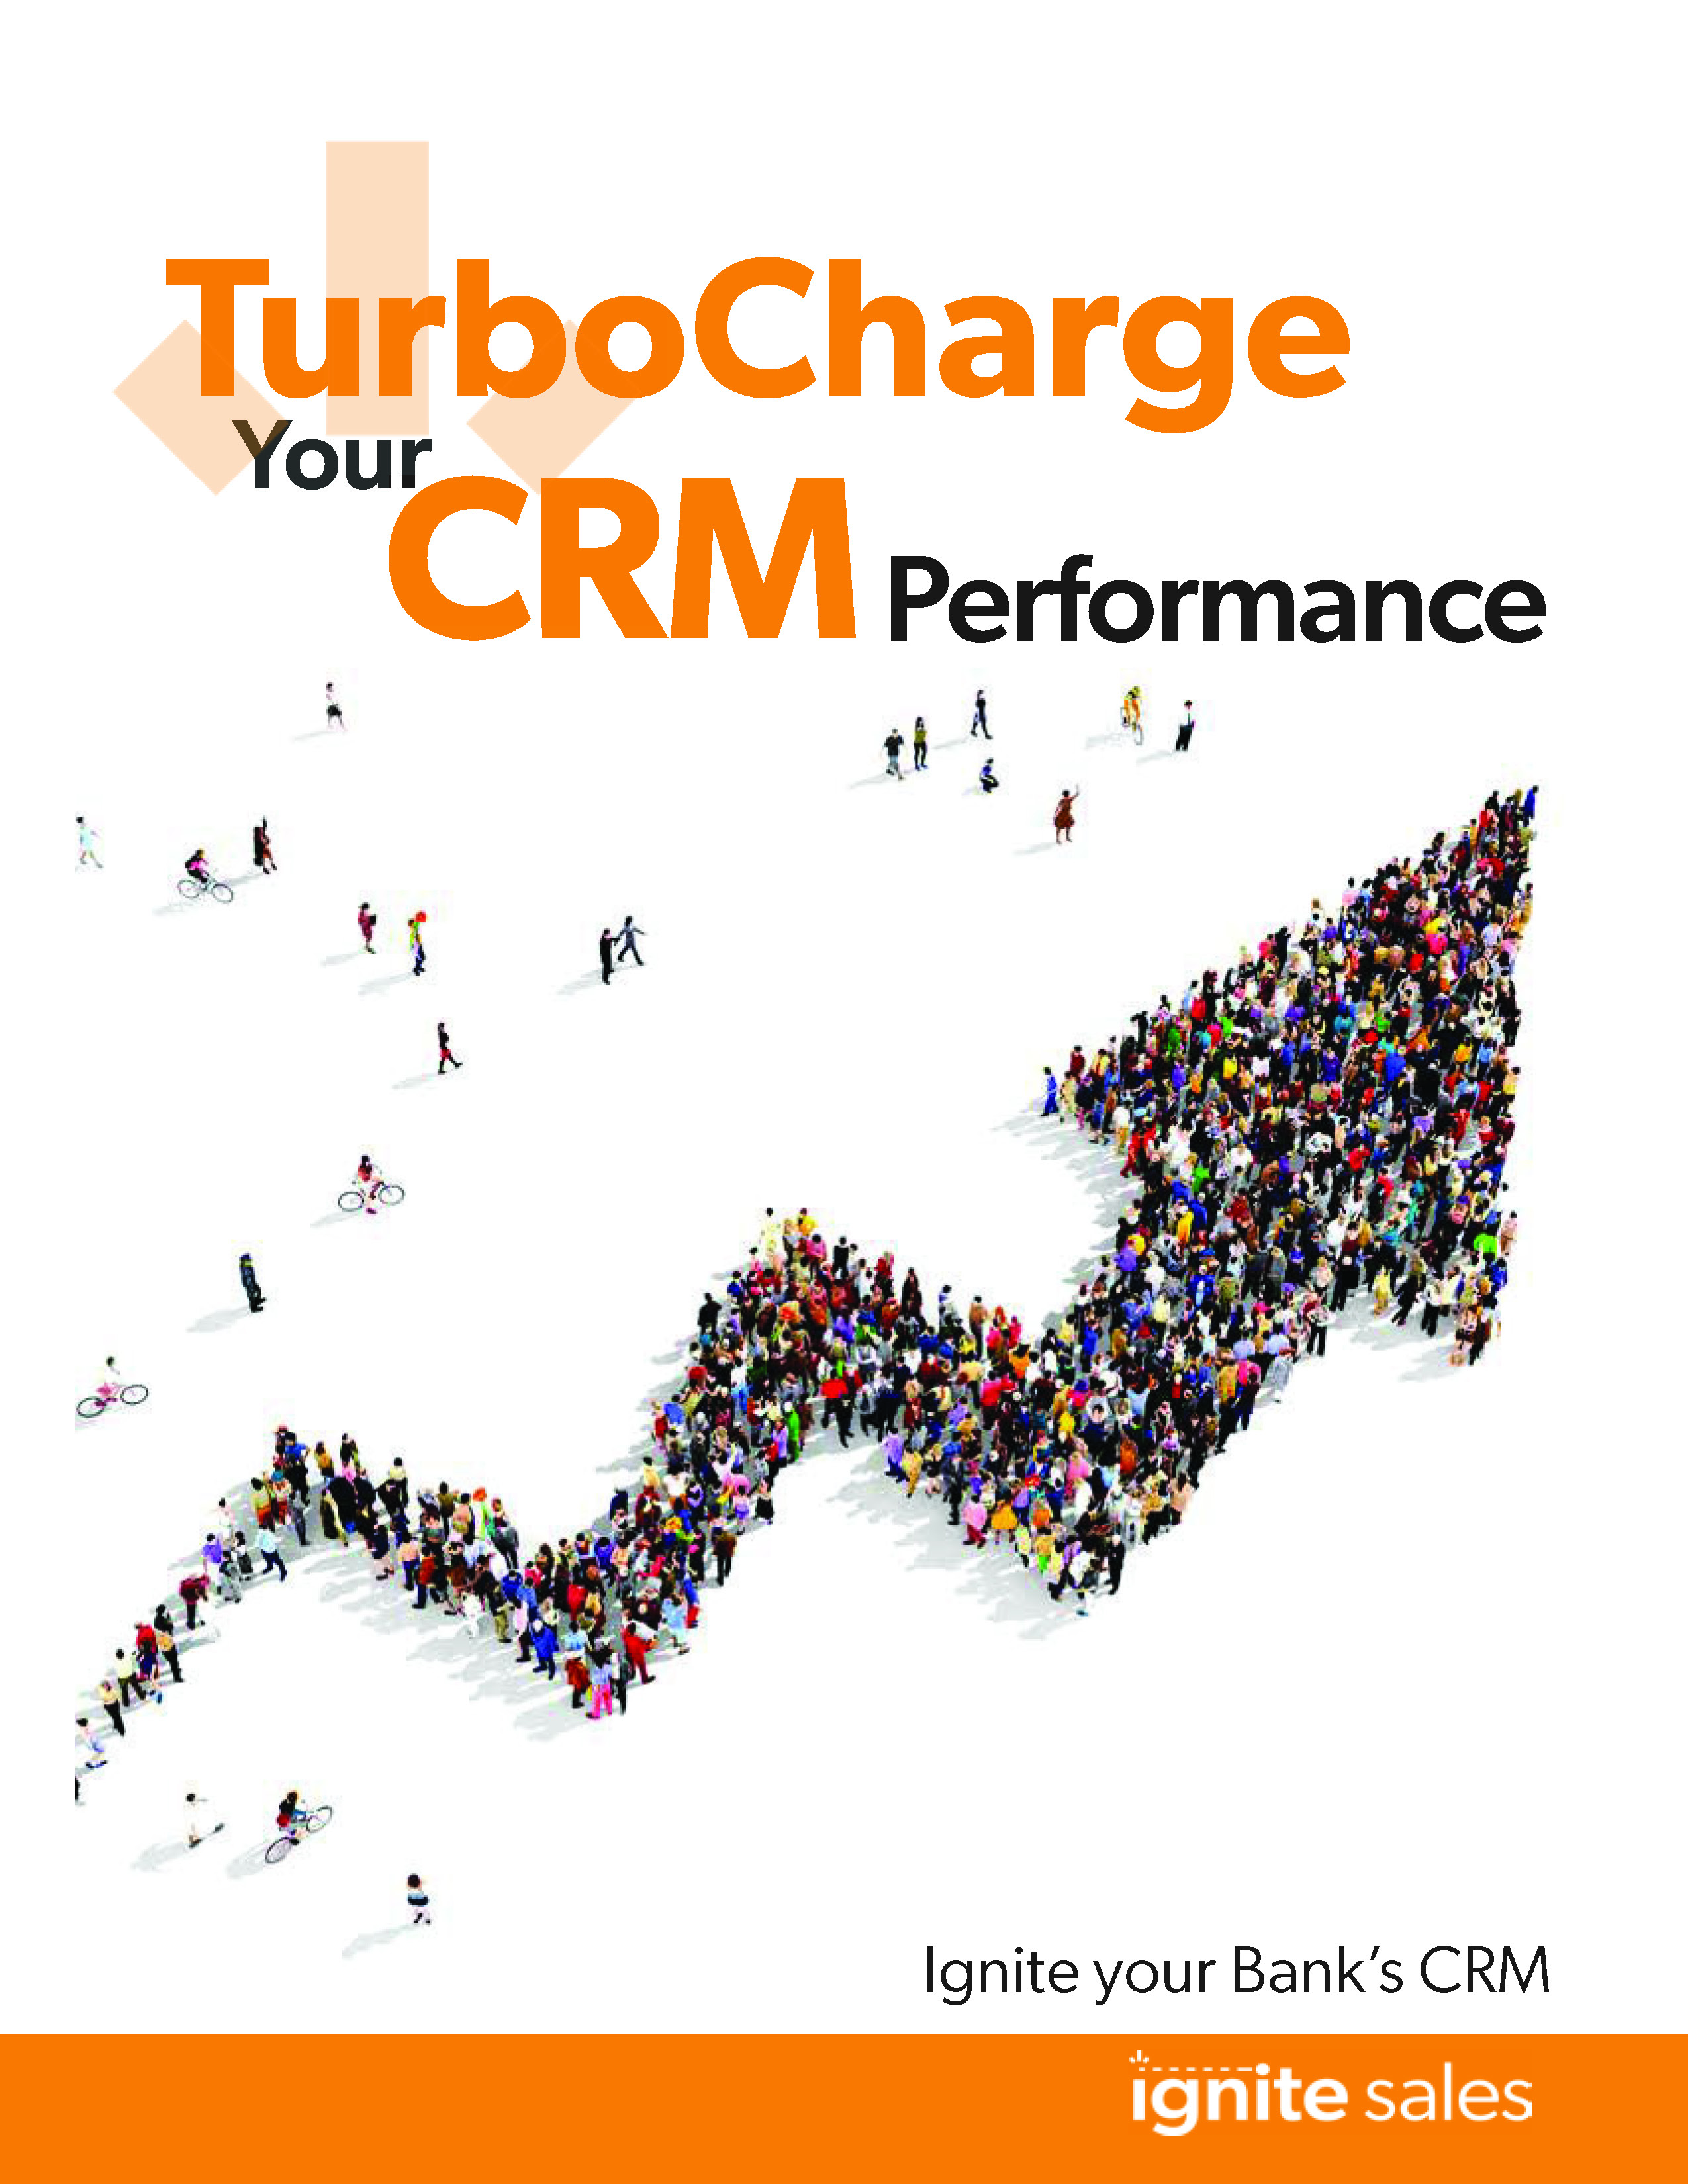 turbocharge your bank's crm performance